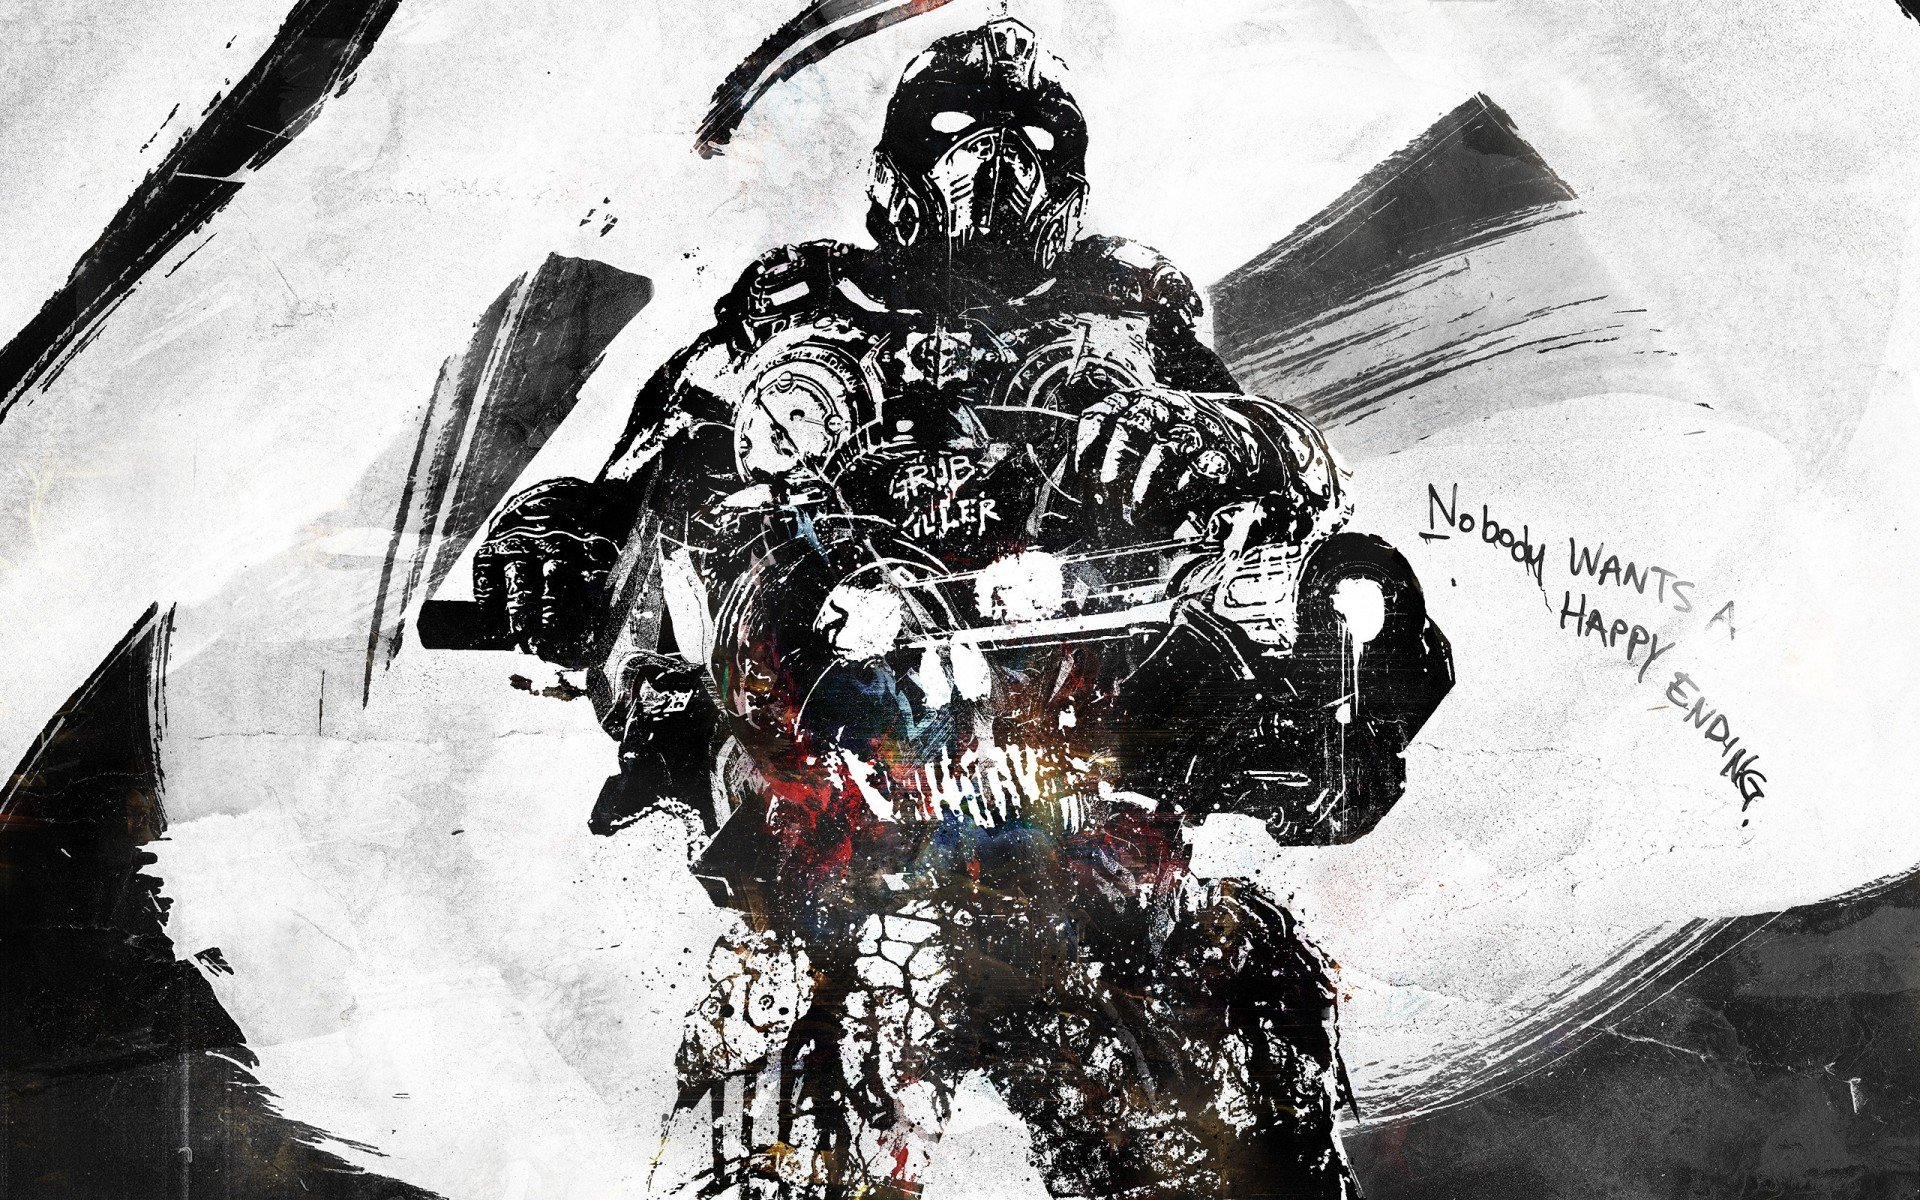 солдат, gears of war, nobody wants a happy ending, vhm-alex